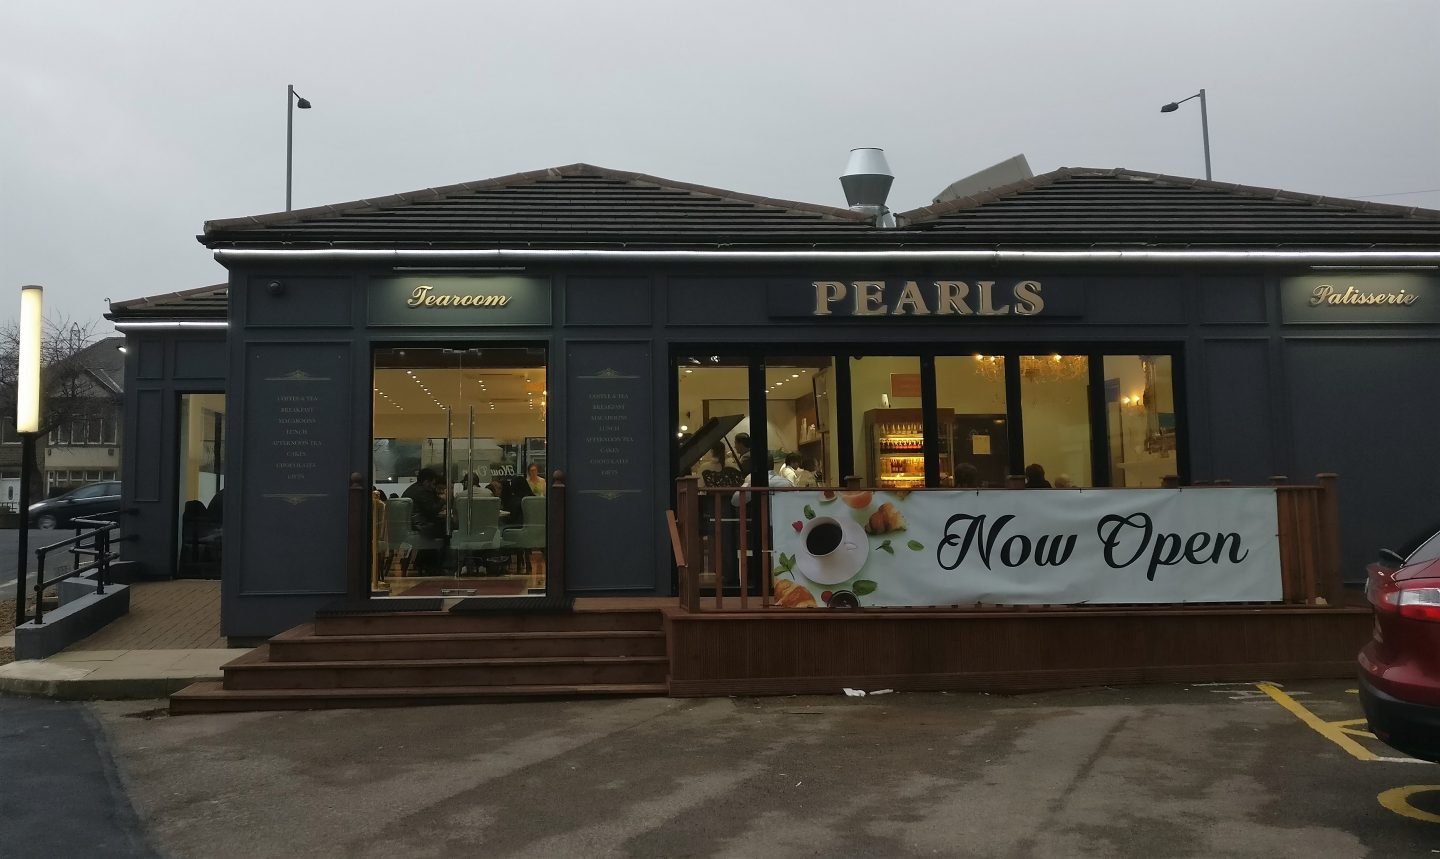 Pearls TeaRoom Bradford Outside